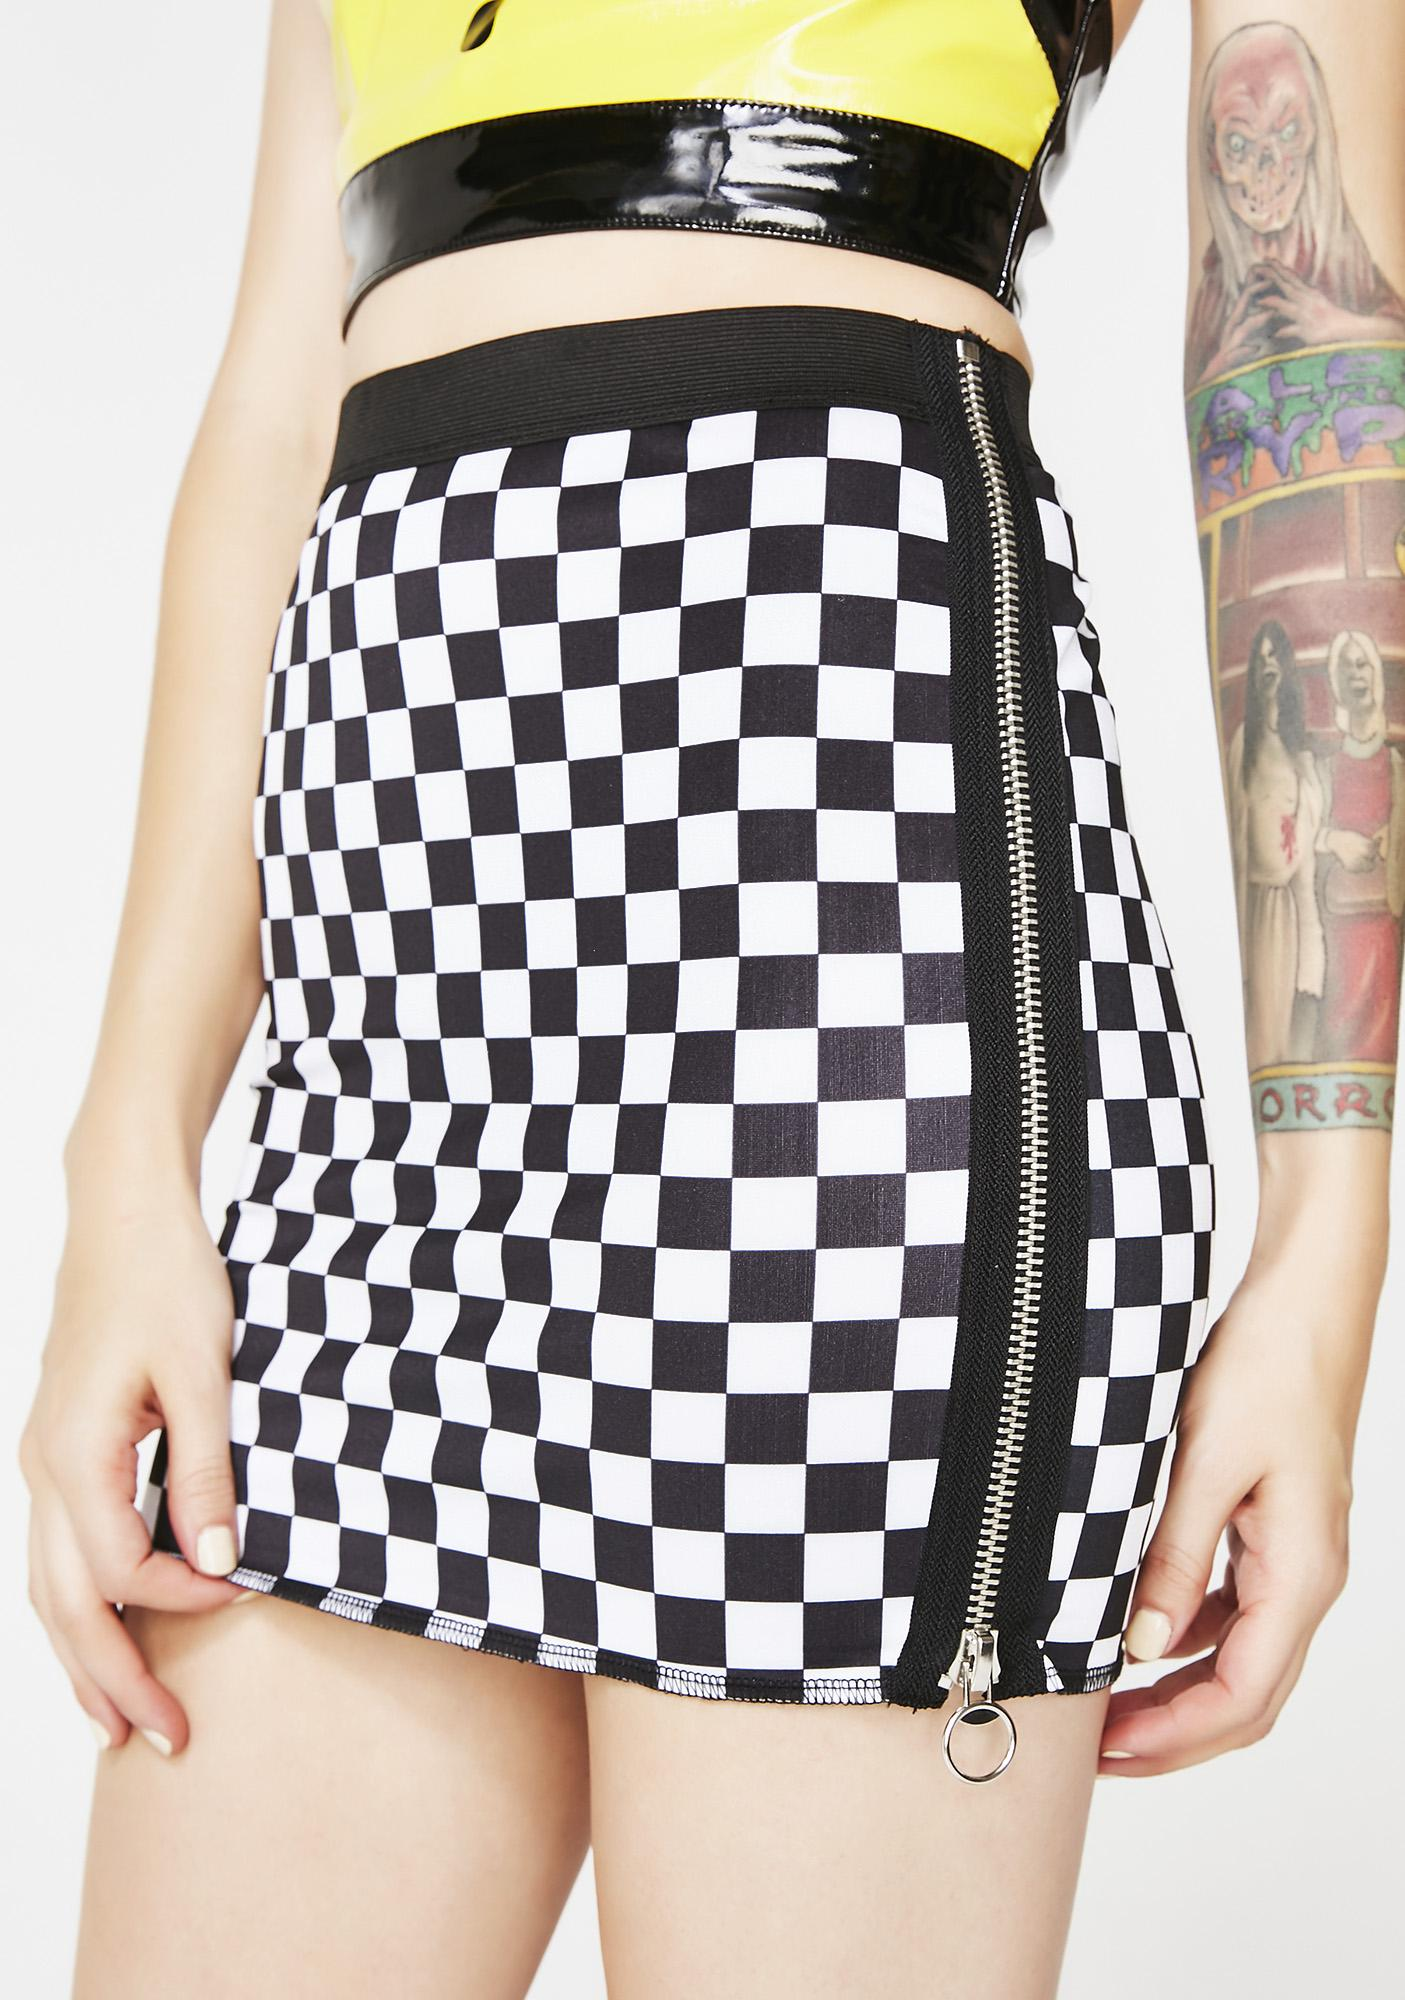 Icy Speed It Up Checkered Skirt by Current Mood